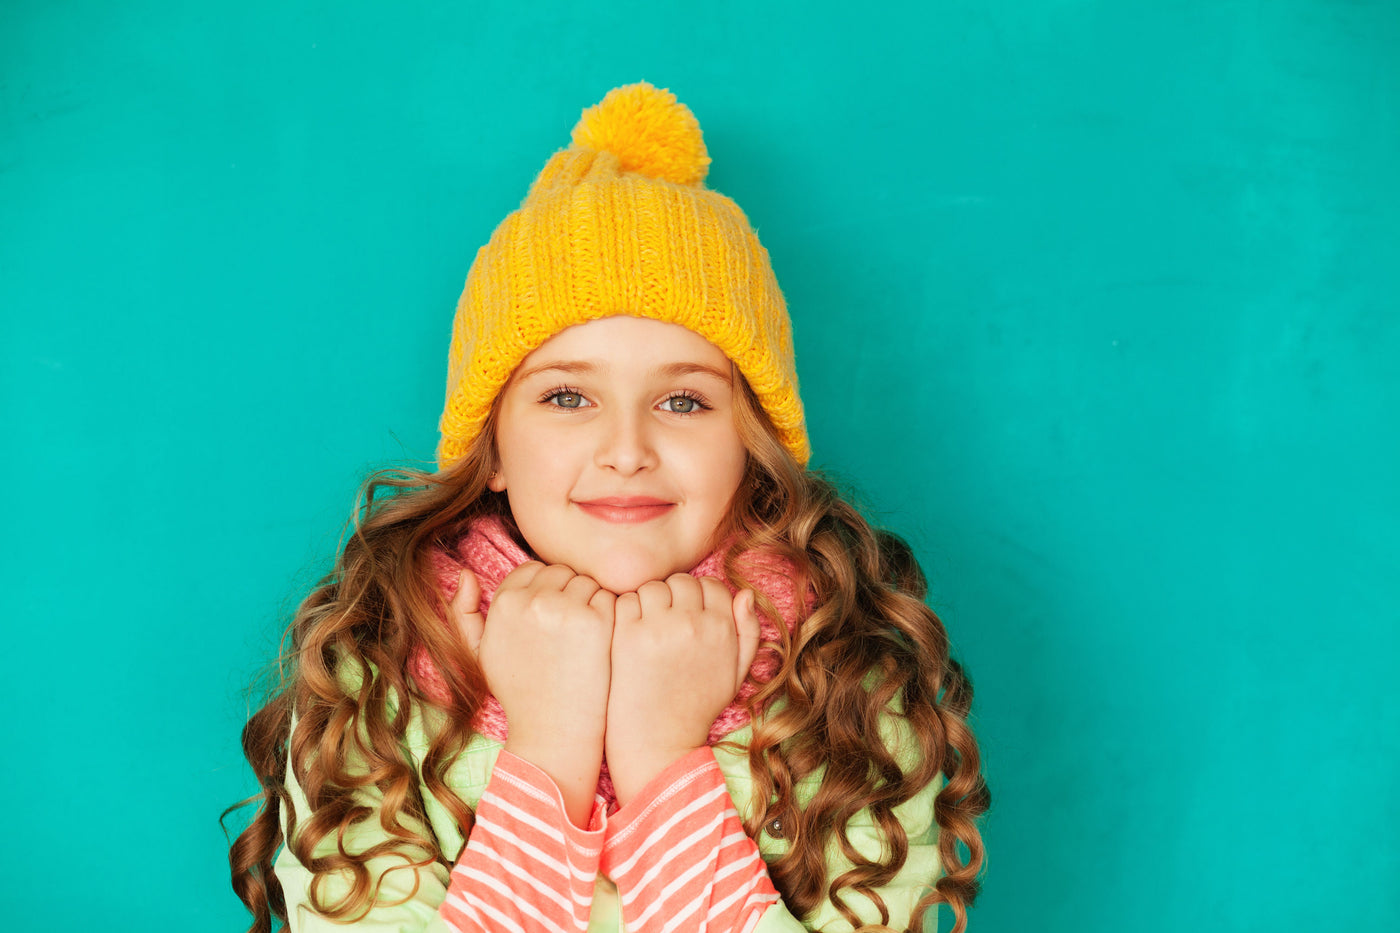 Shop clothings, shoes, accessories for little girls